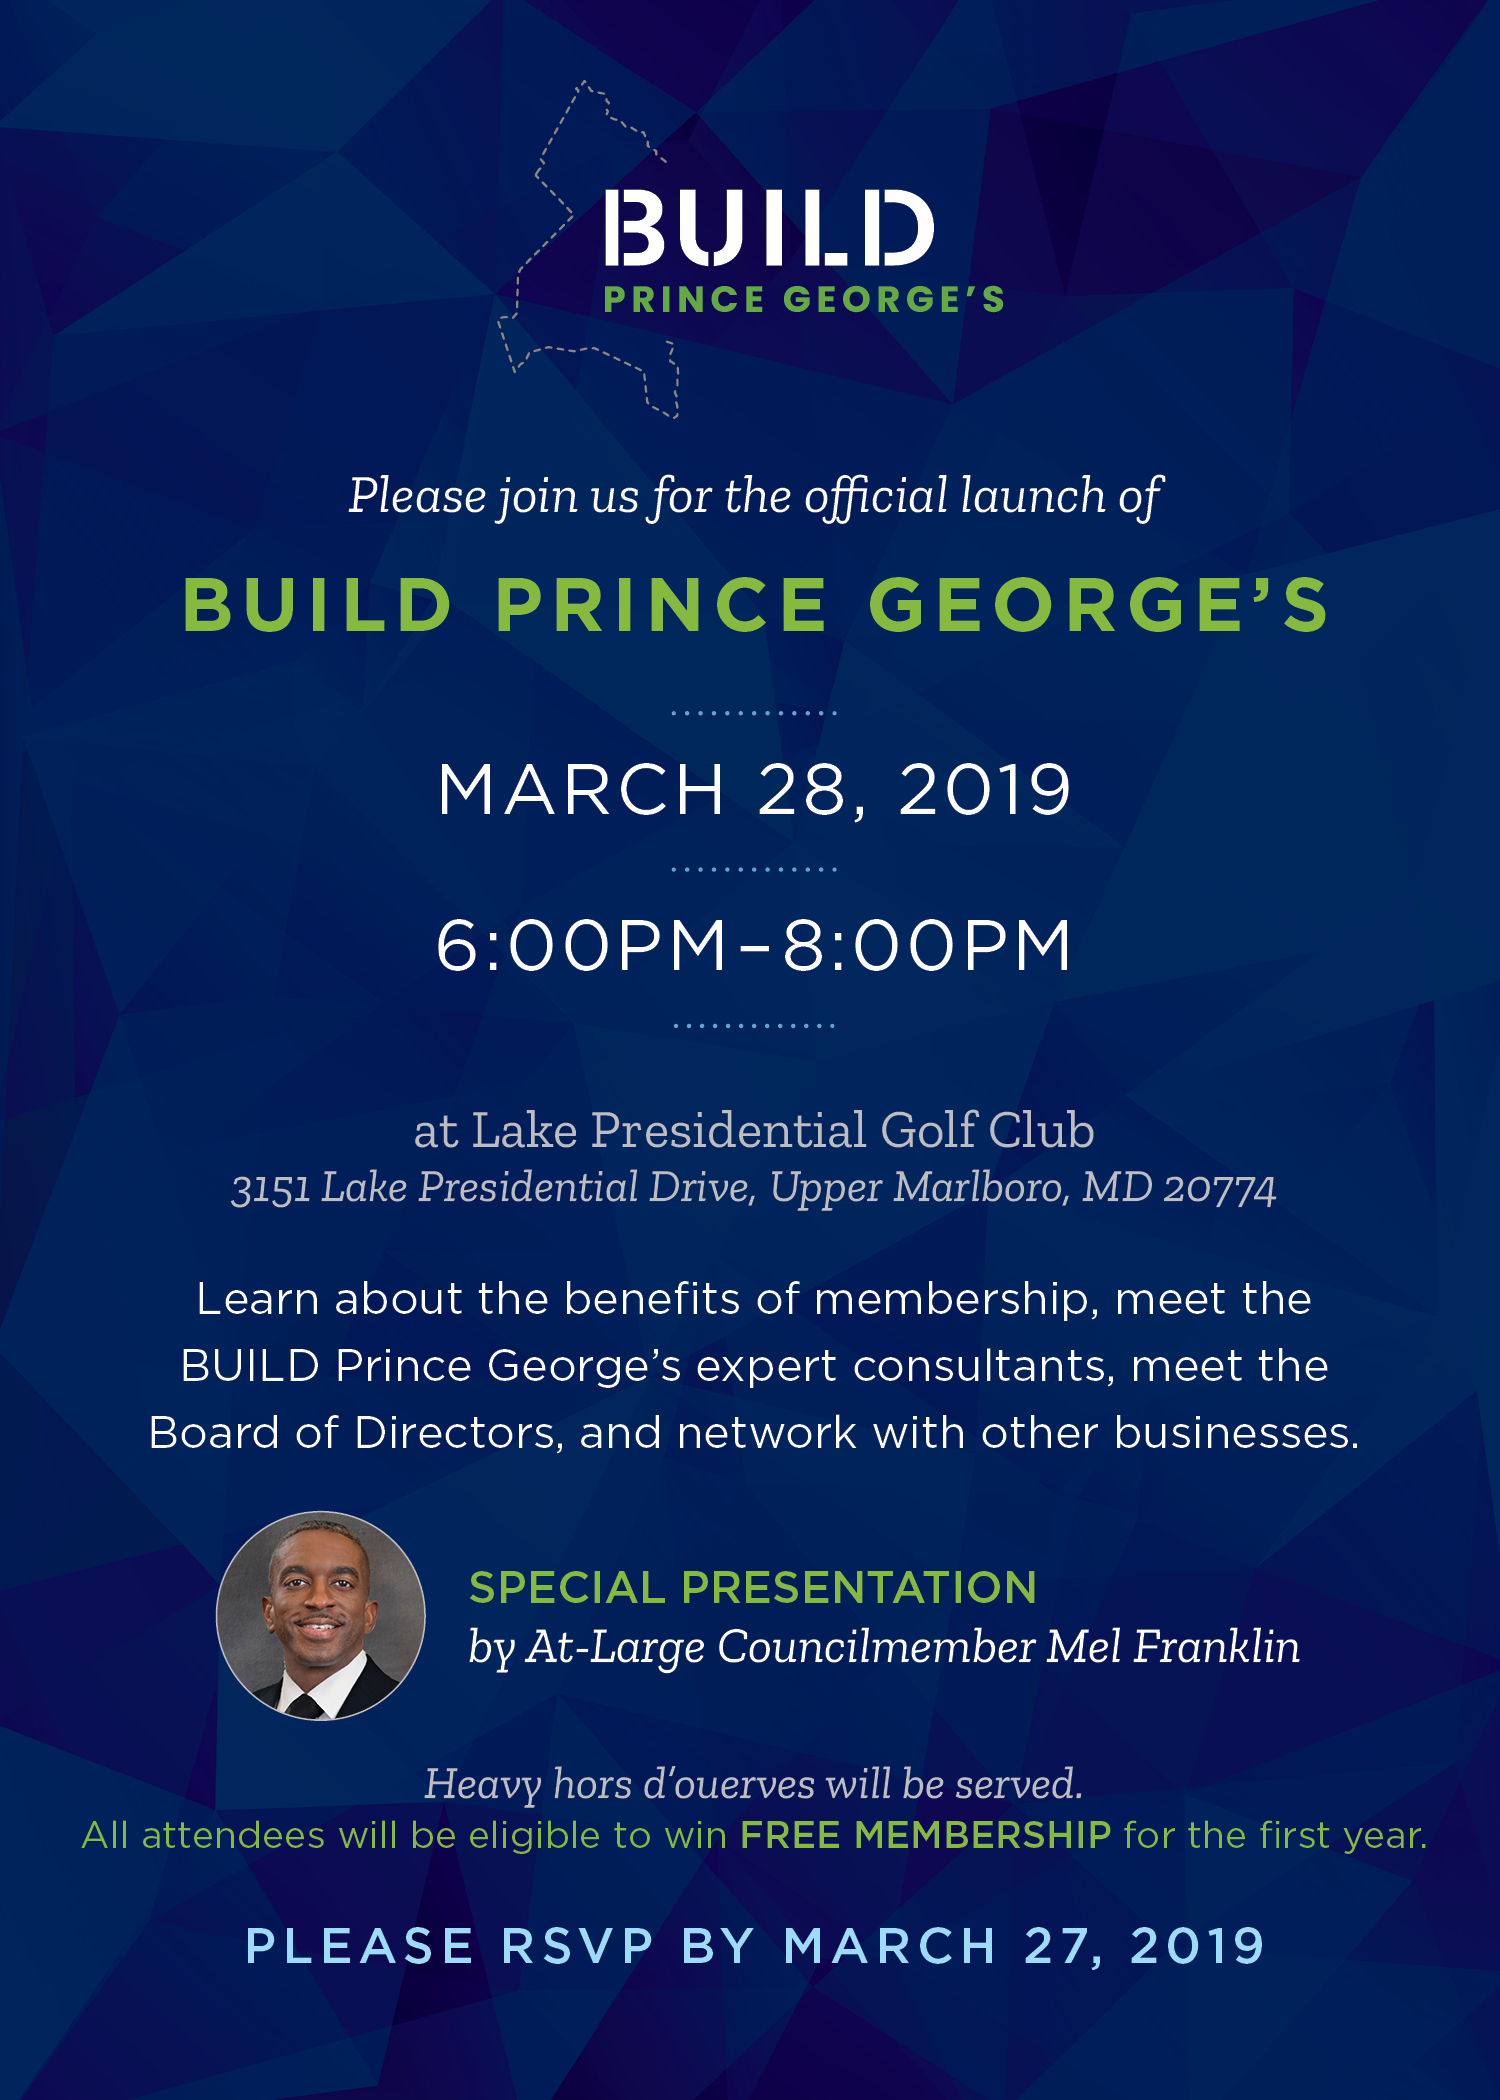 BUILD Prince George's Launch Party